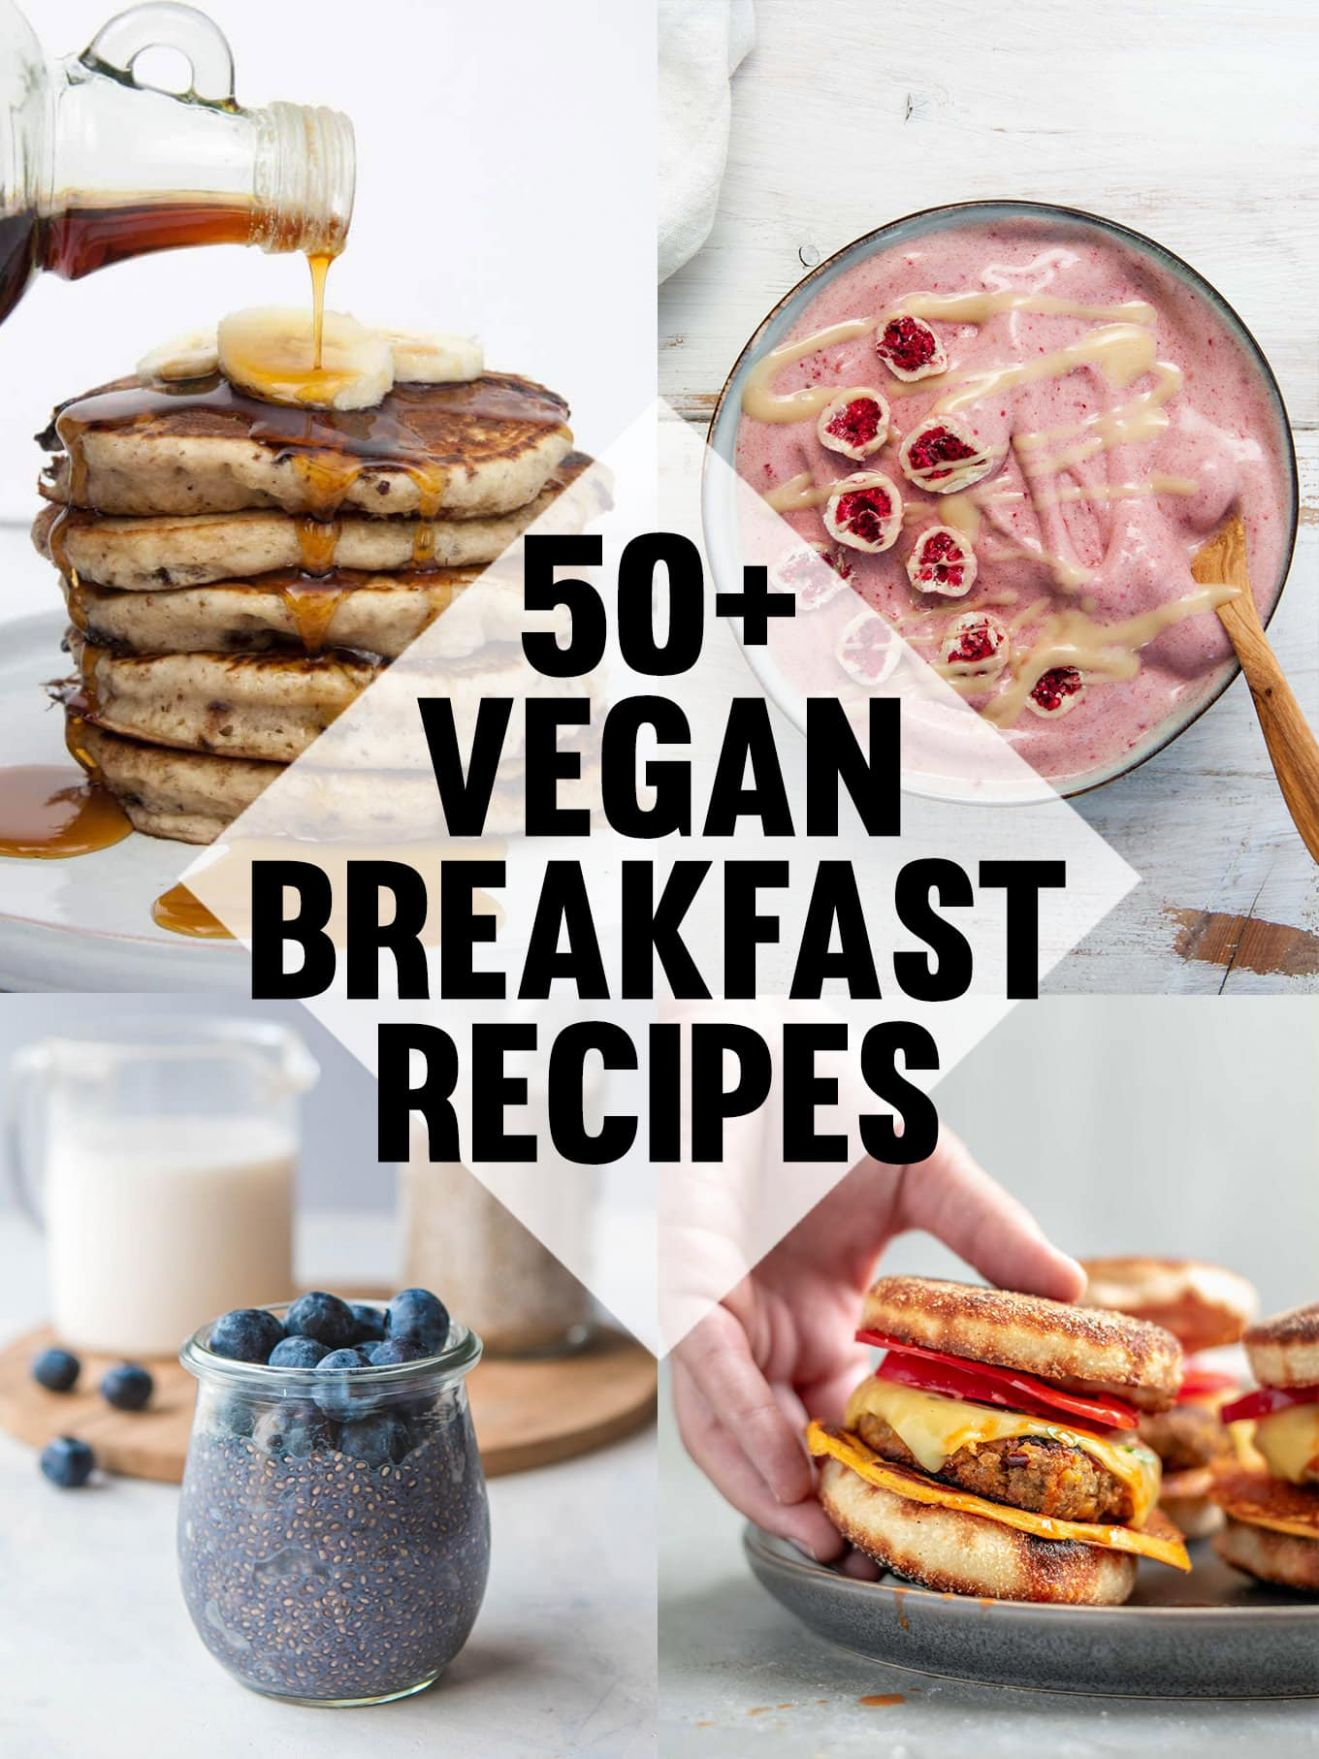 11+ Vegan Breakfast Recipes - The Ultimate Collection ..